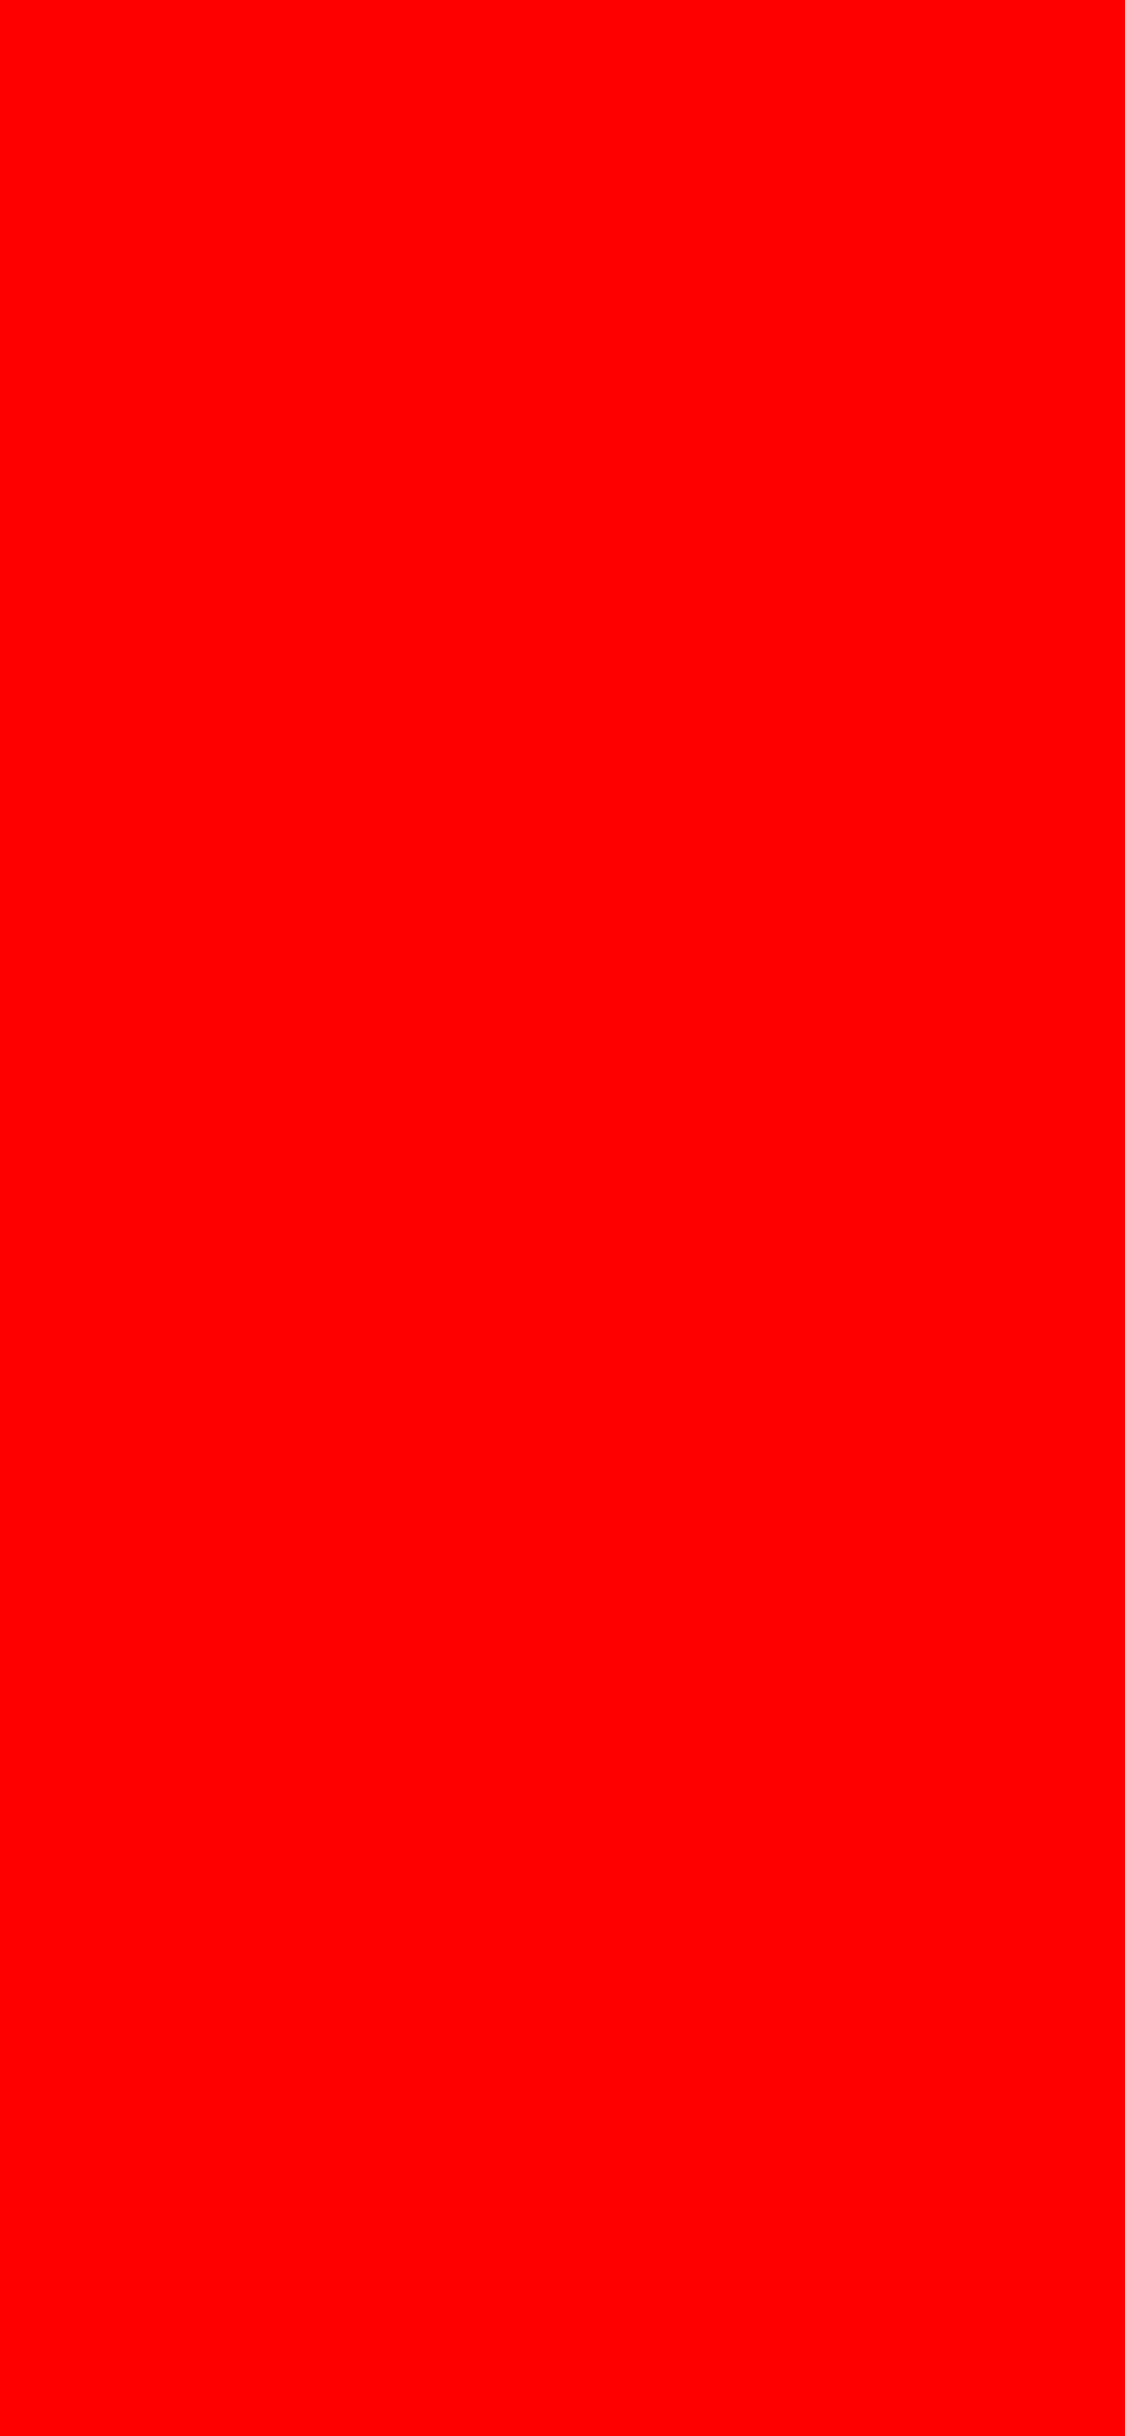 1125x2436 Red Solid Color Background